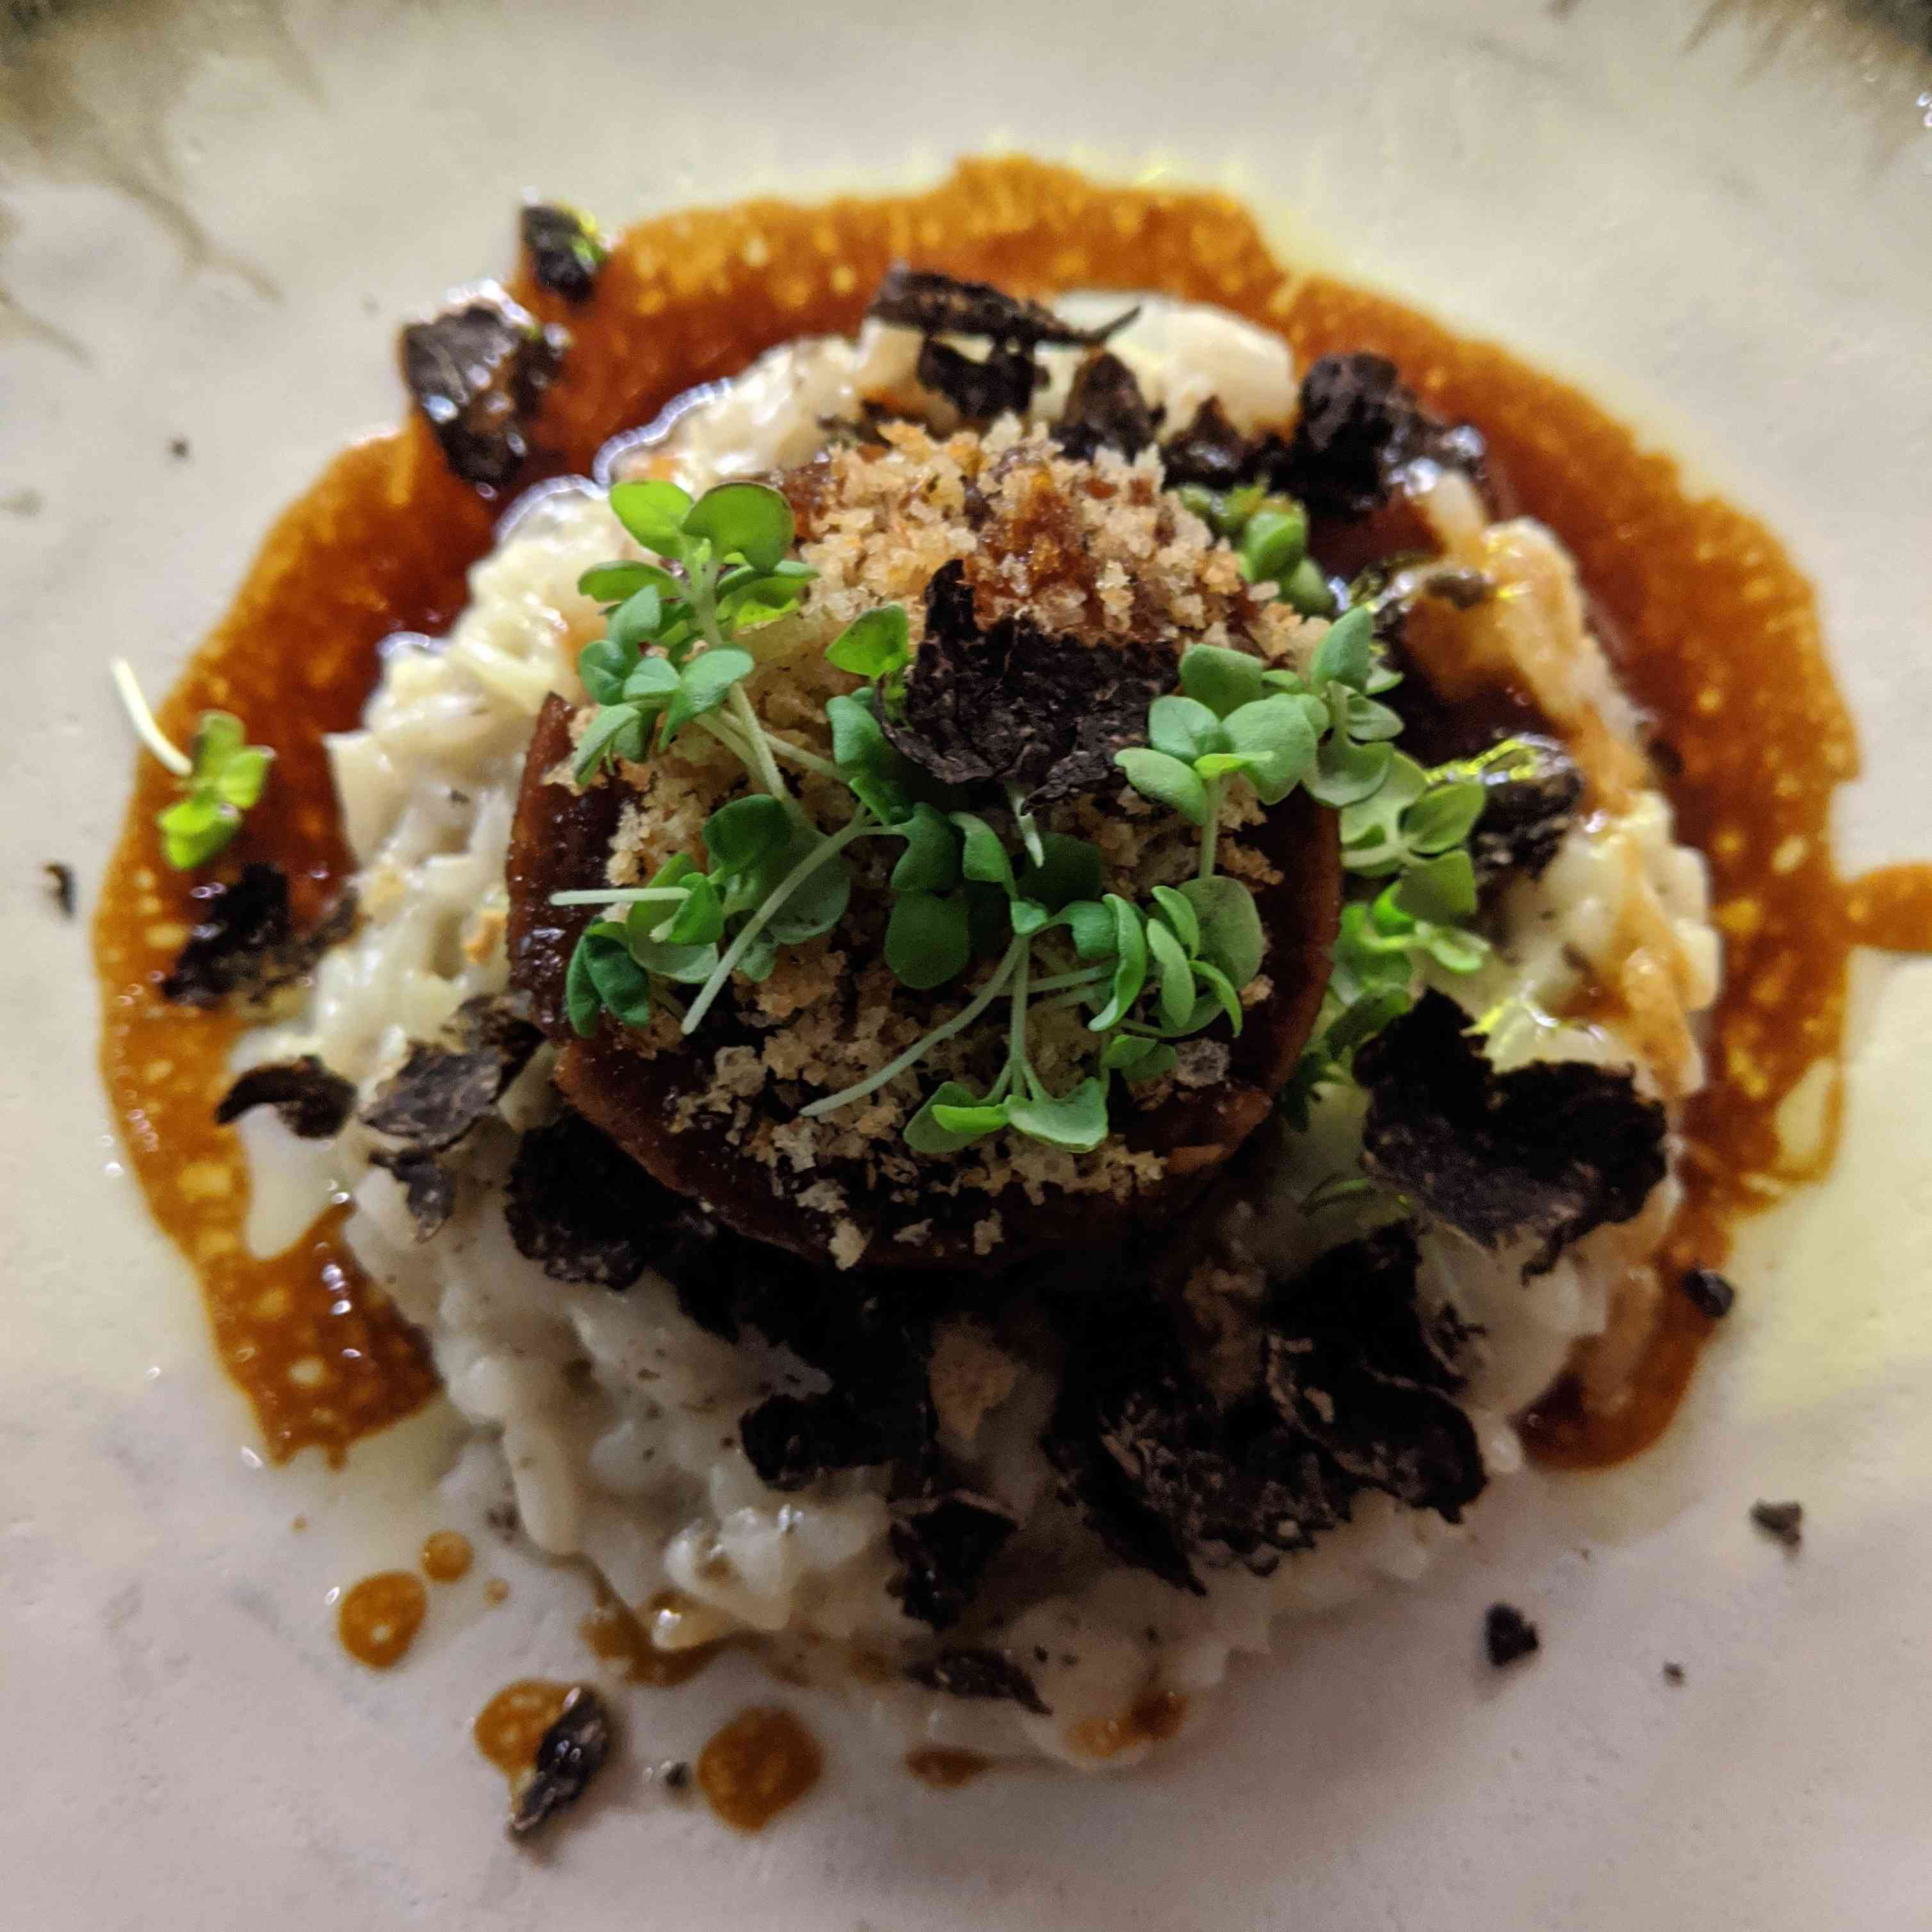 overhead photo of risotto with black truffle shavings and garnished with sprouts